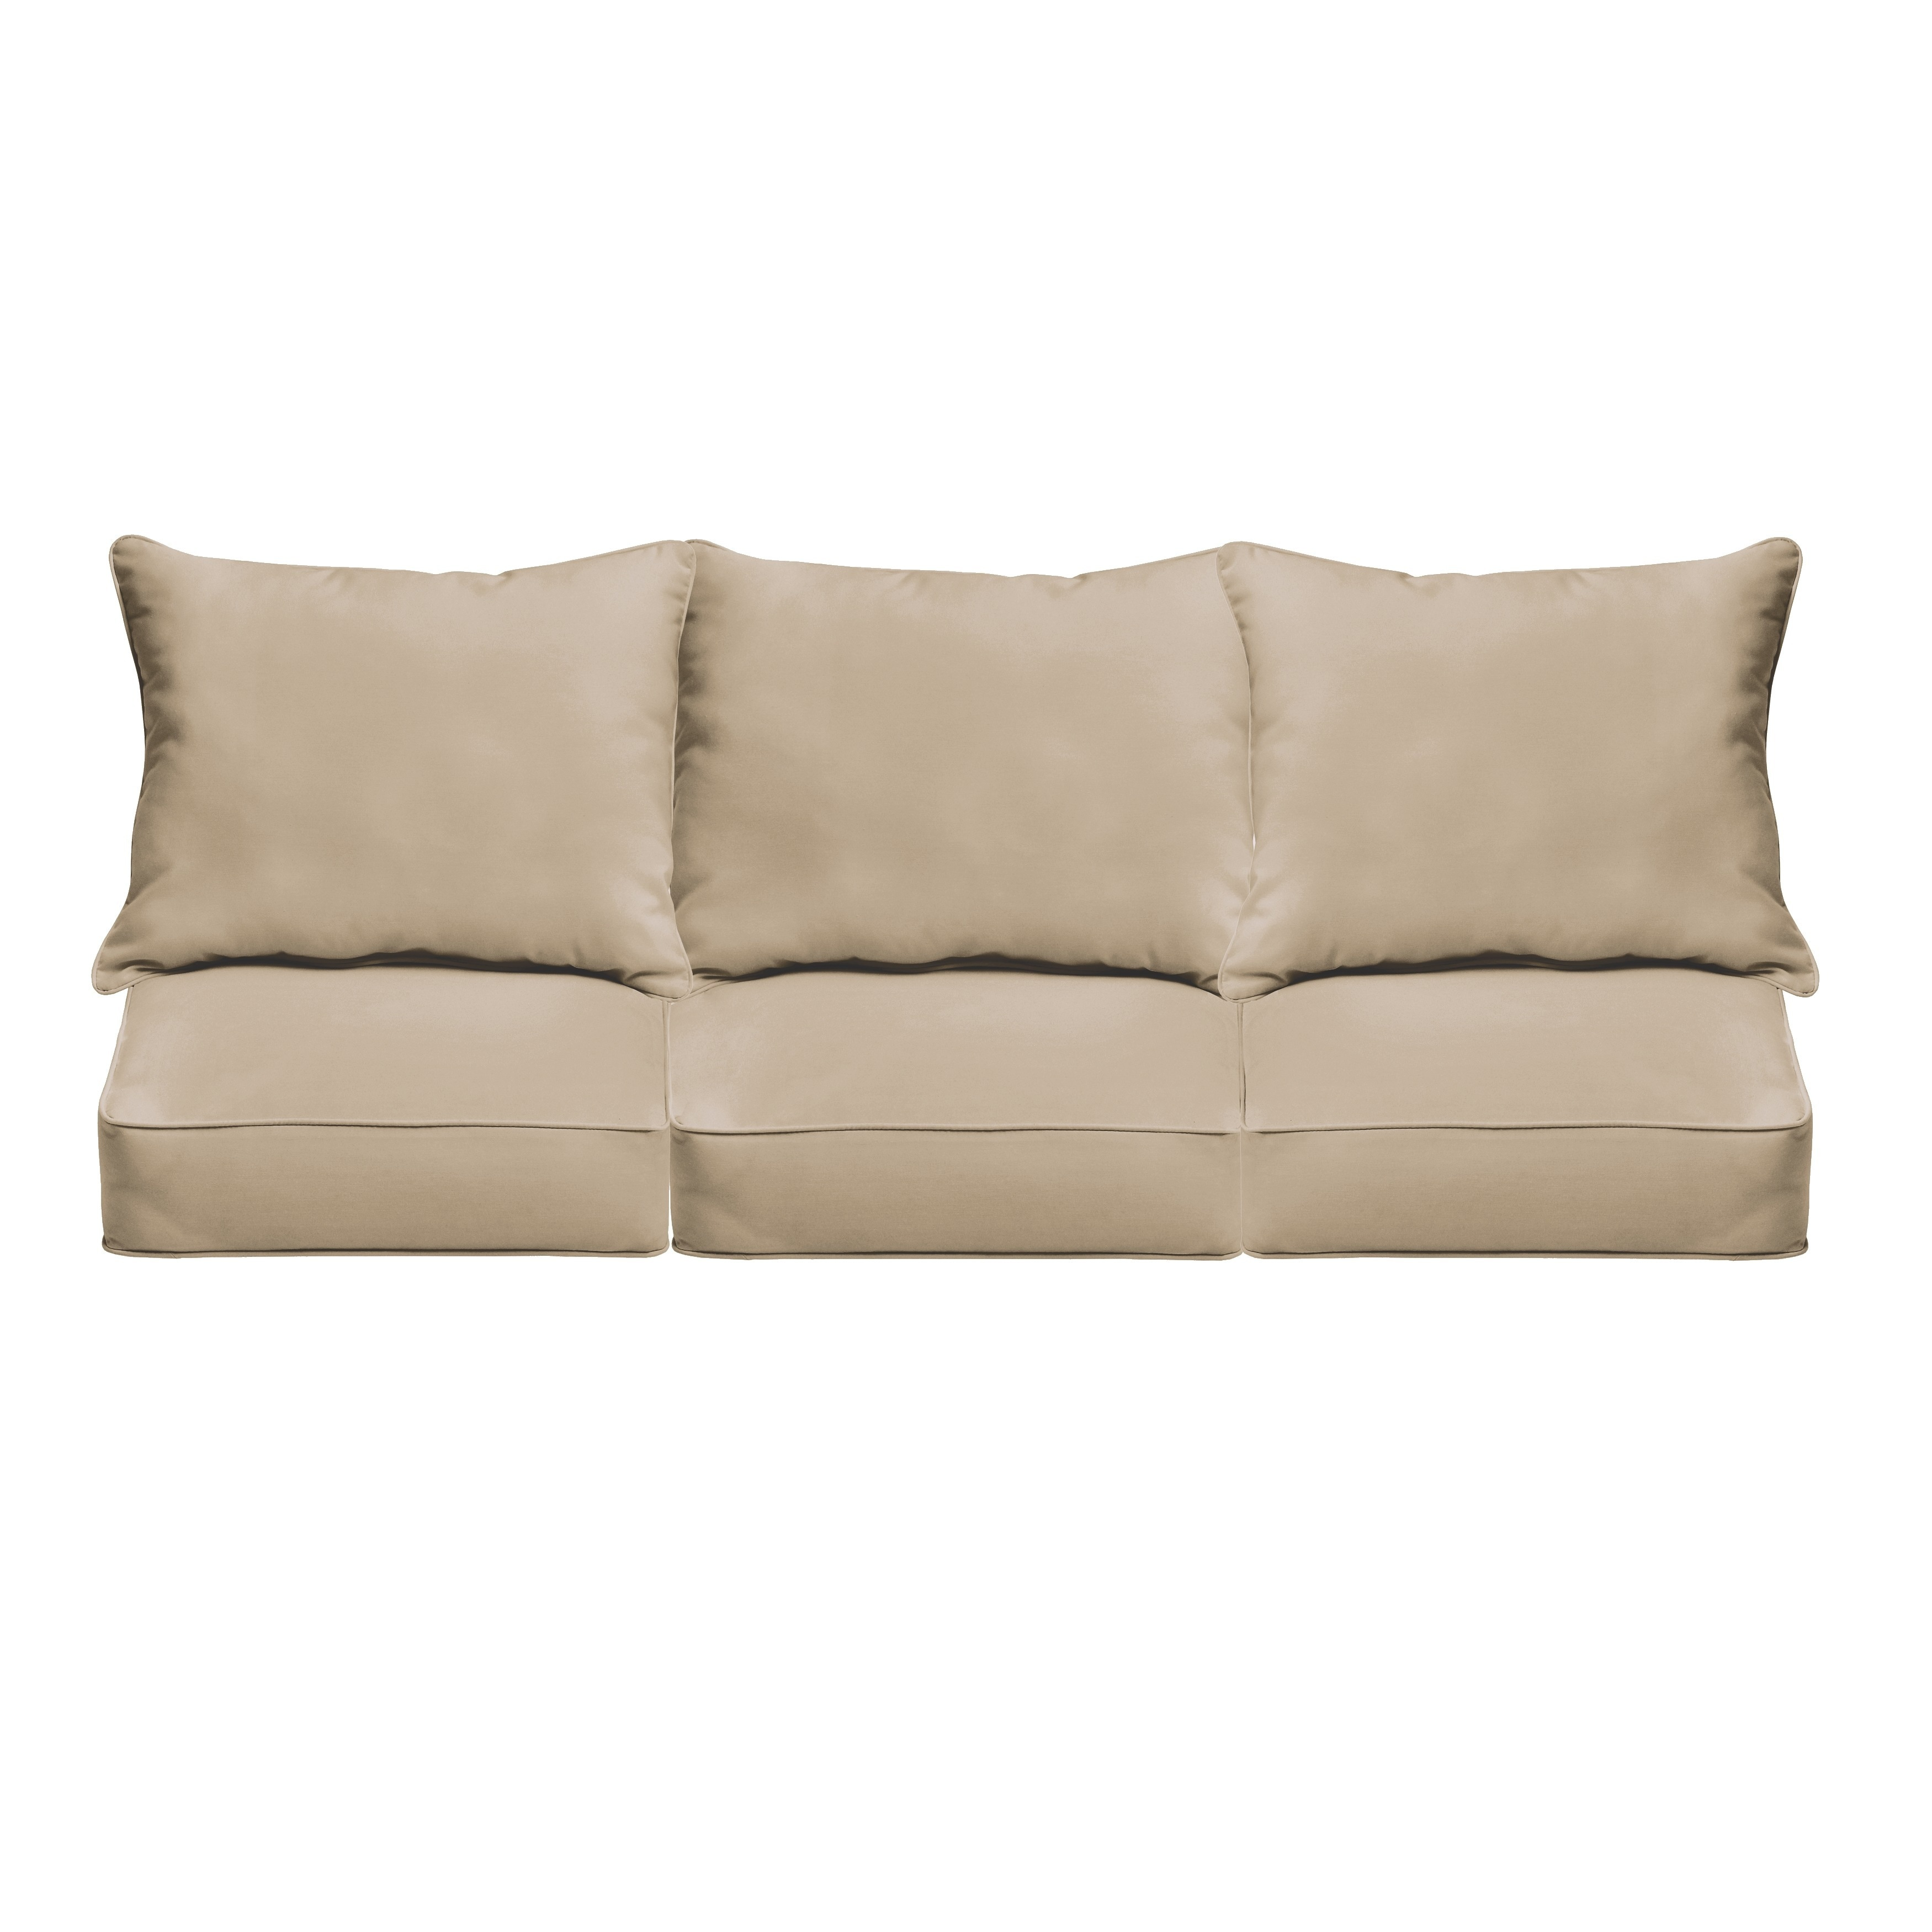 Big Sofa Back Cushions Buy Sunbrella Outdoor Cushions Pillows Online At Overstock Our